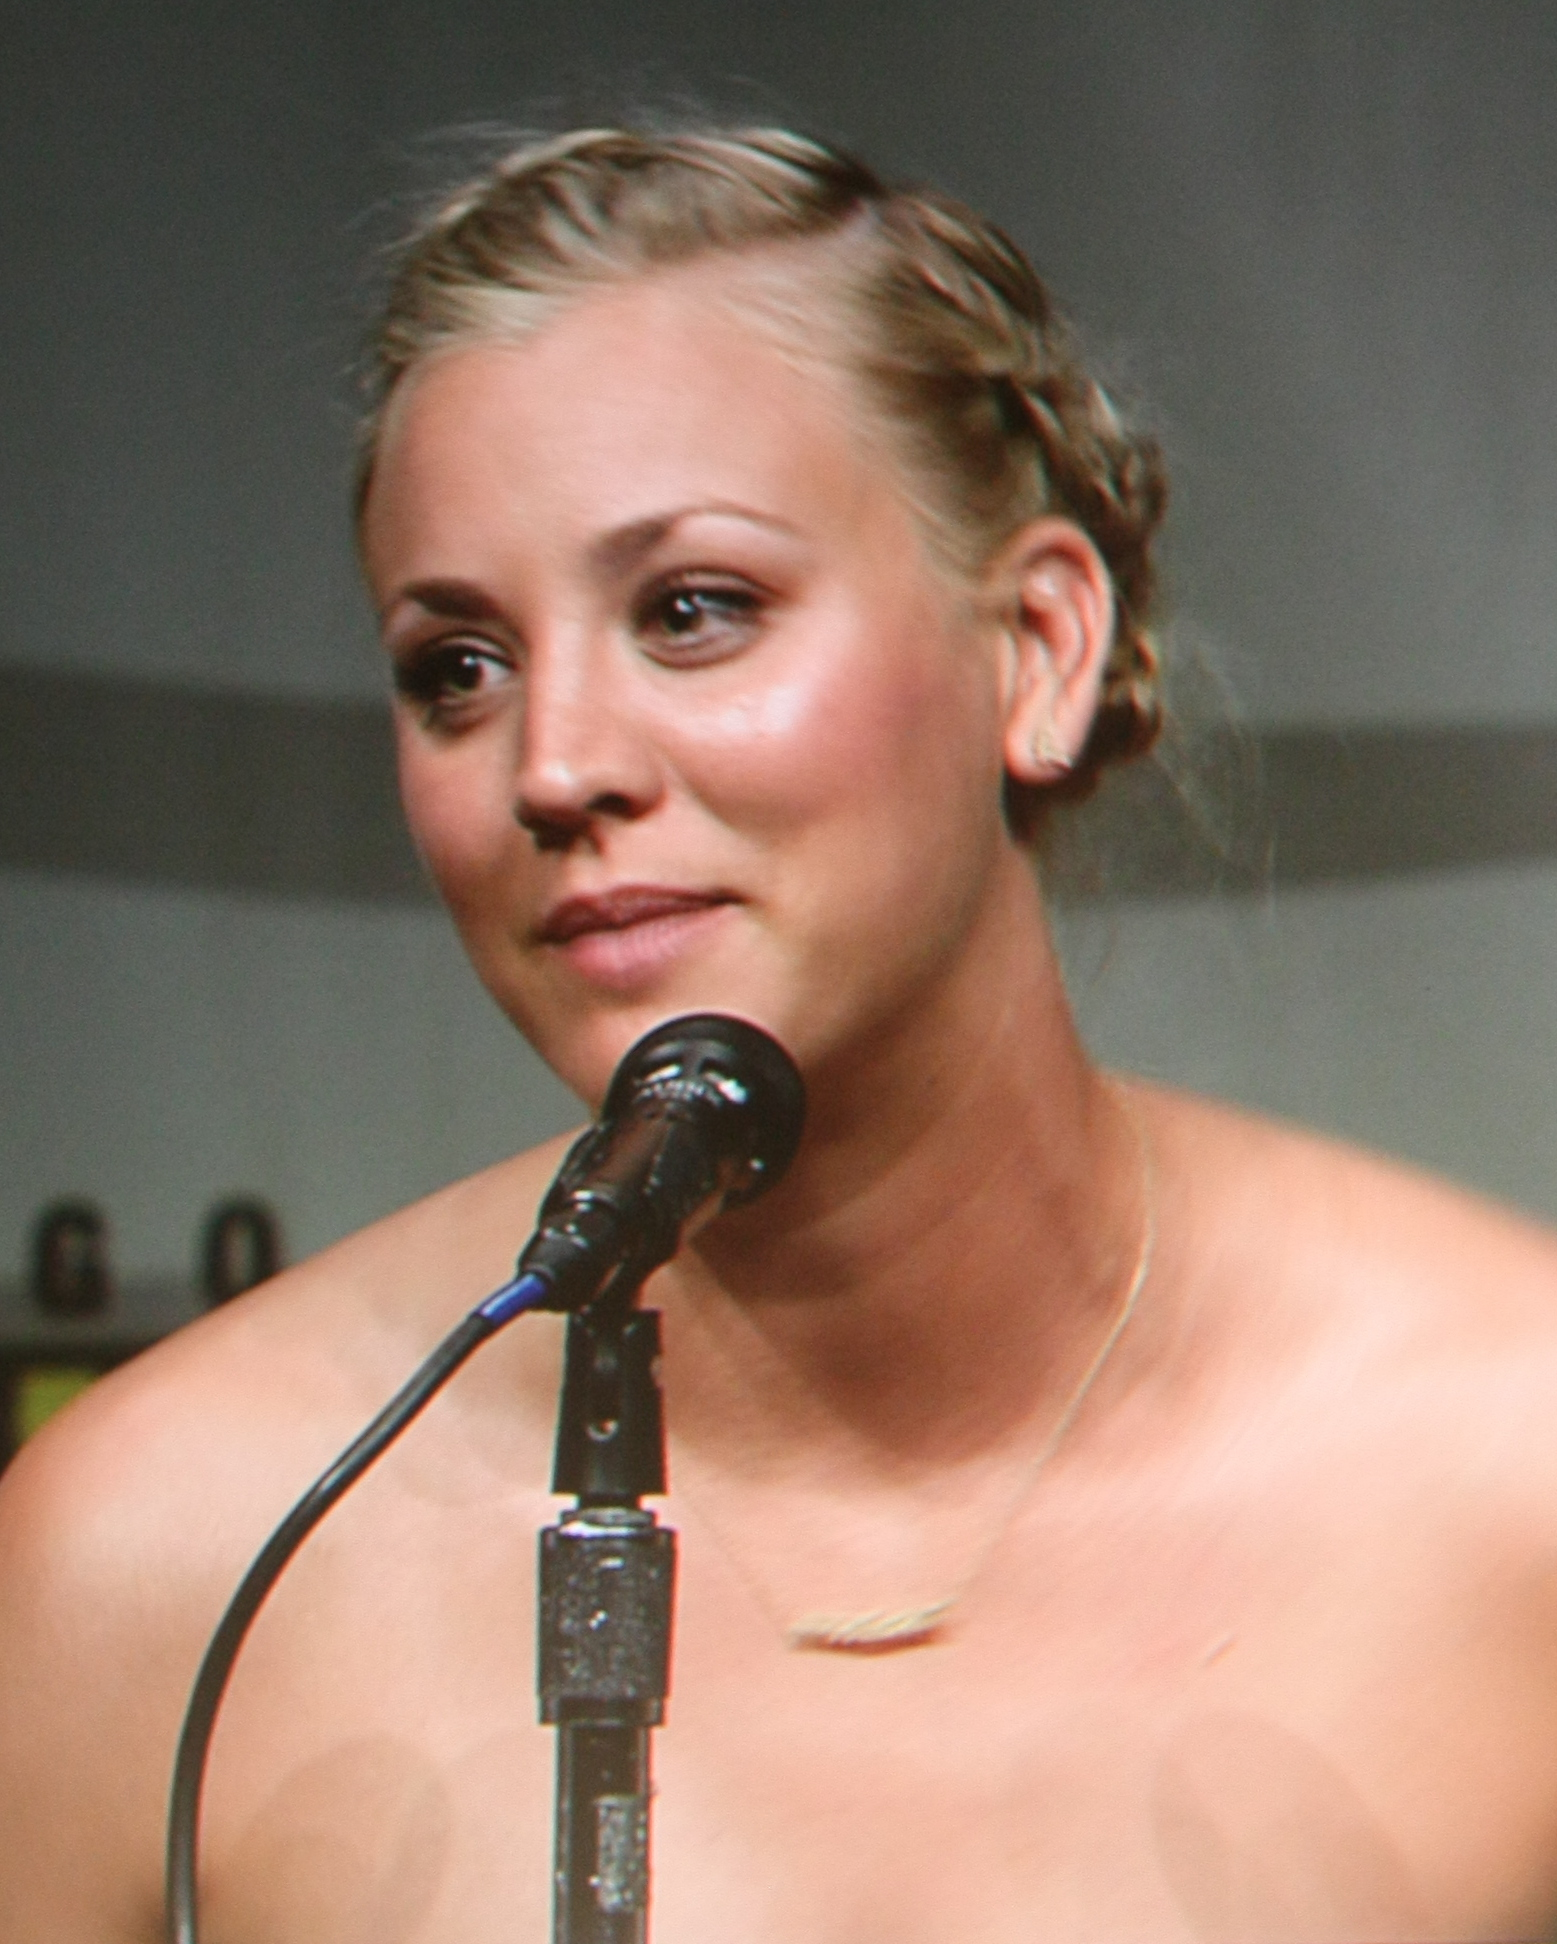 Is Kaley Cuoco a Diva?